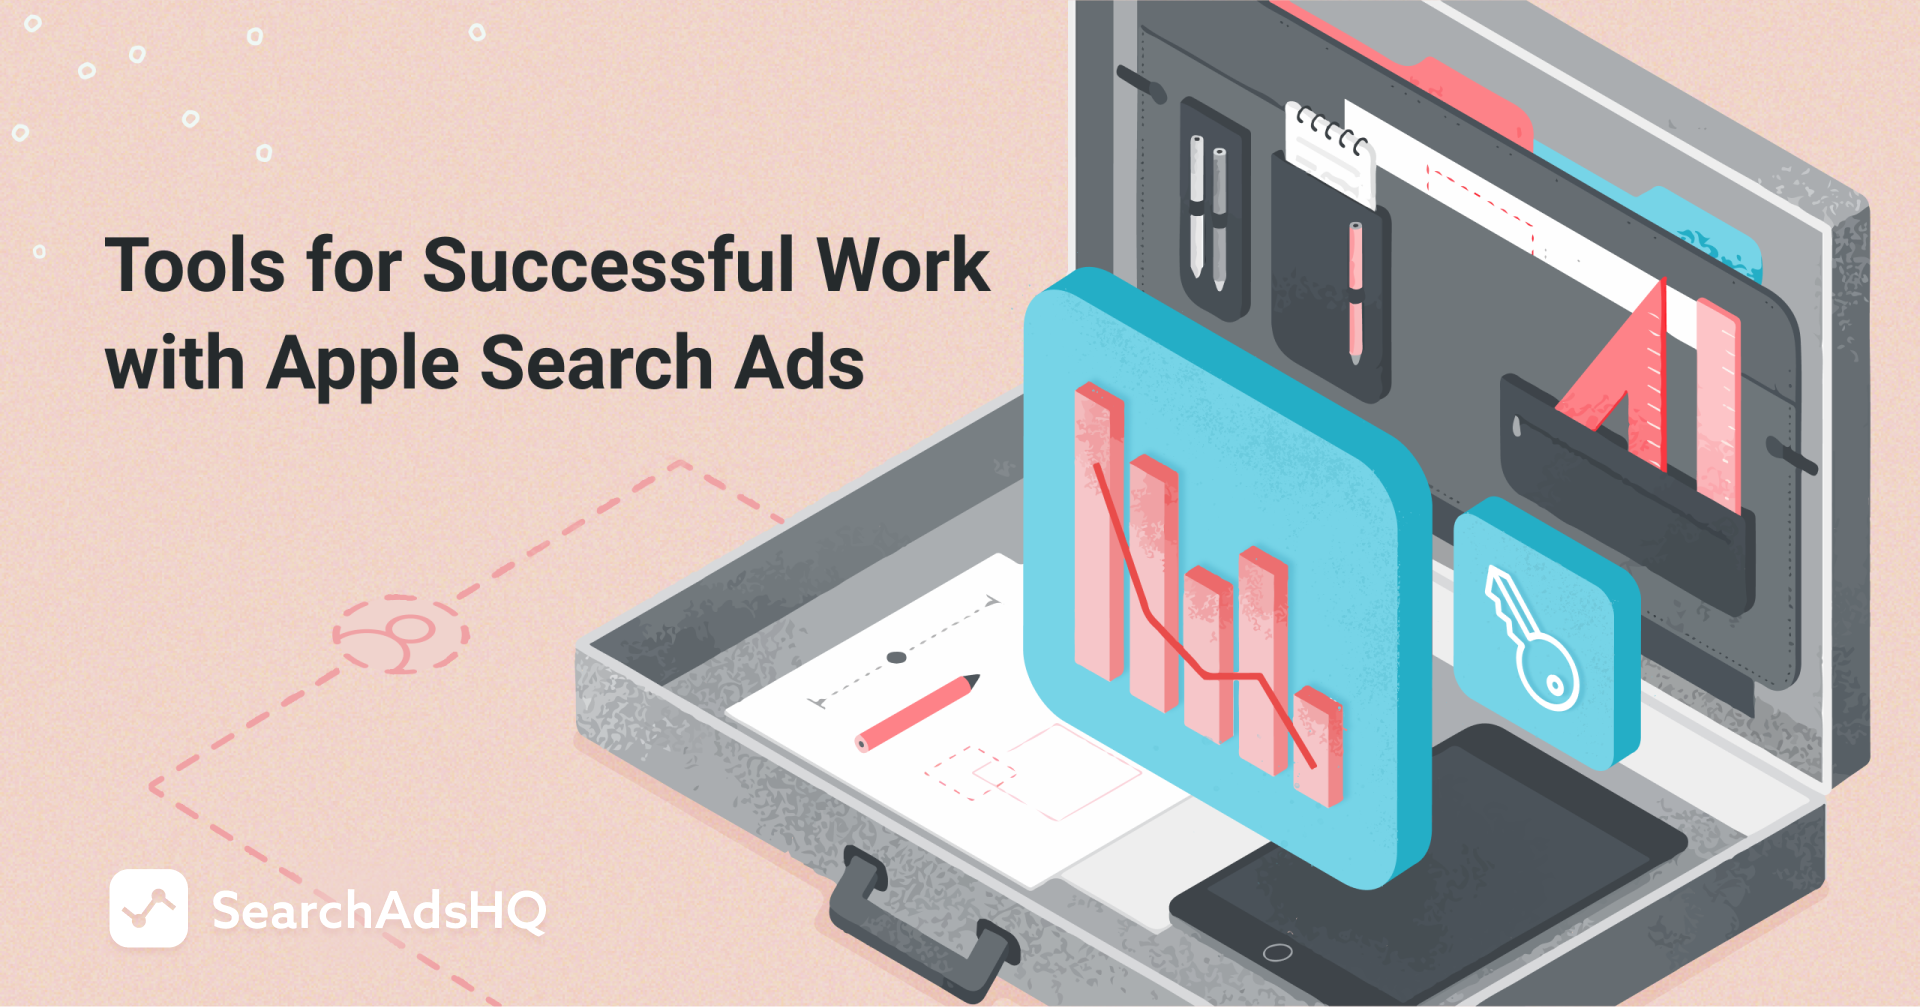 Tools for Successful Work with Apple Search Ads